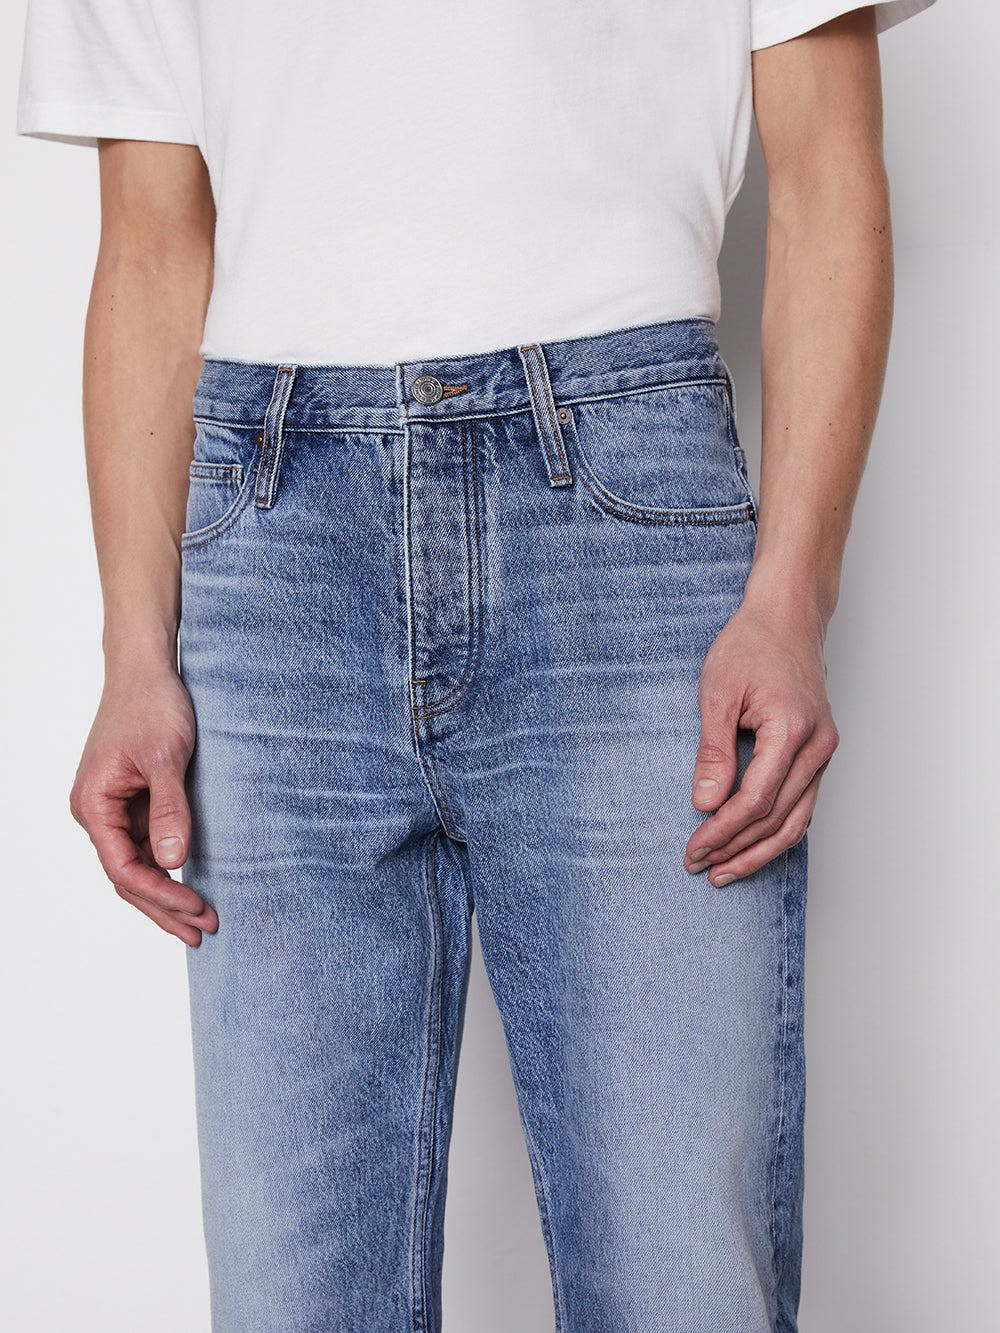 jeans detail view